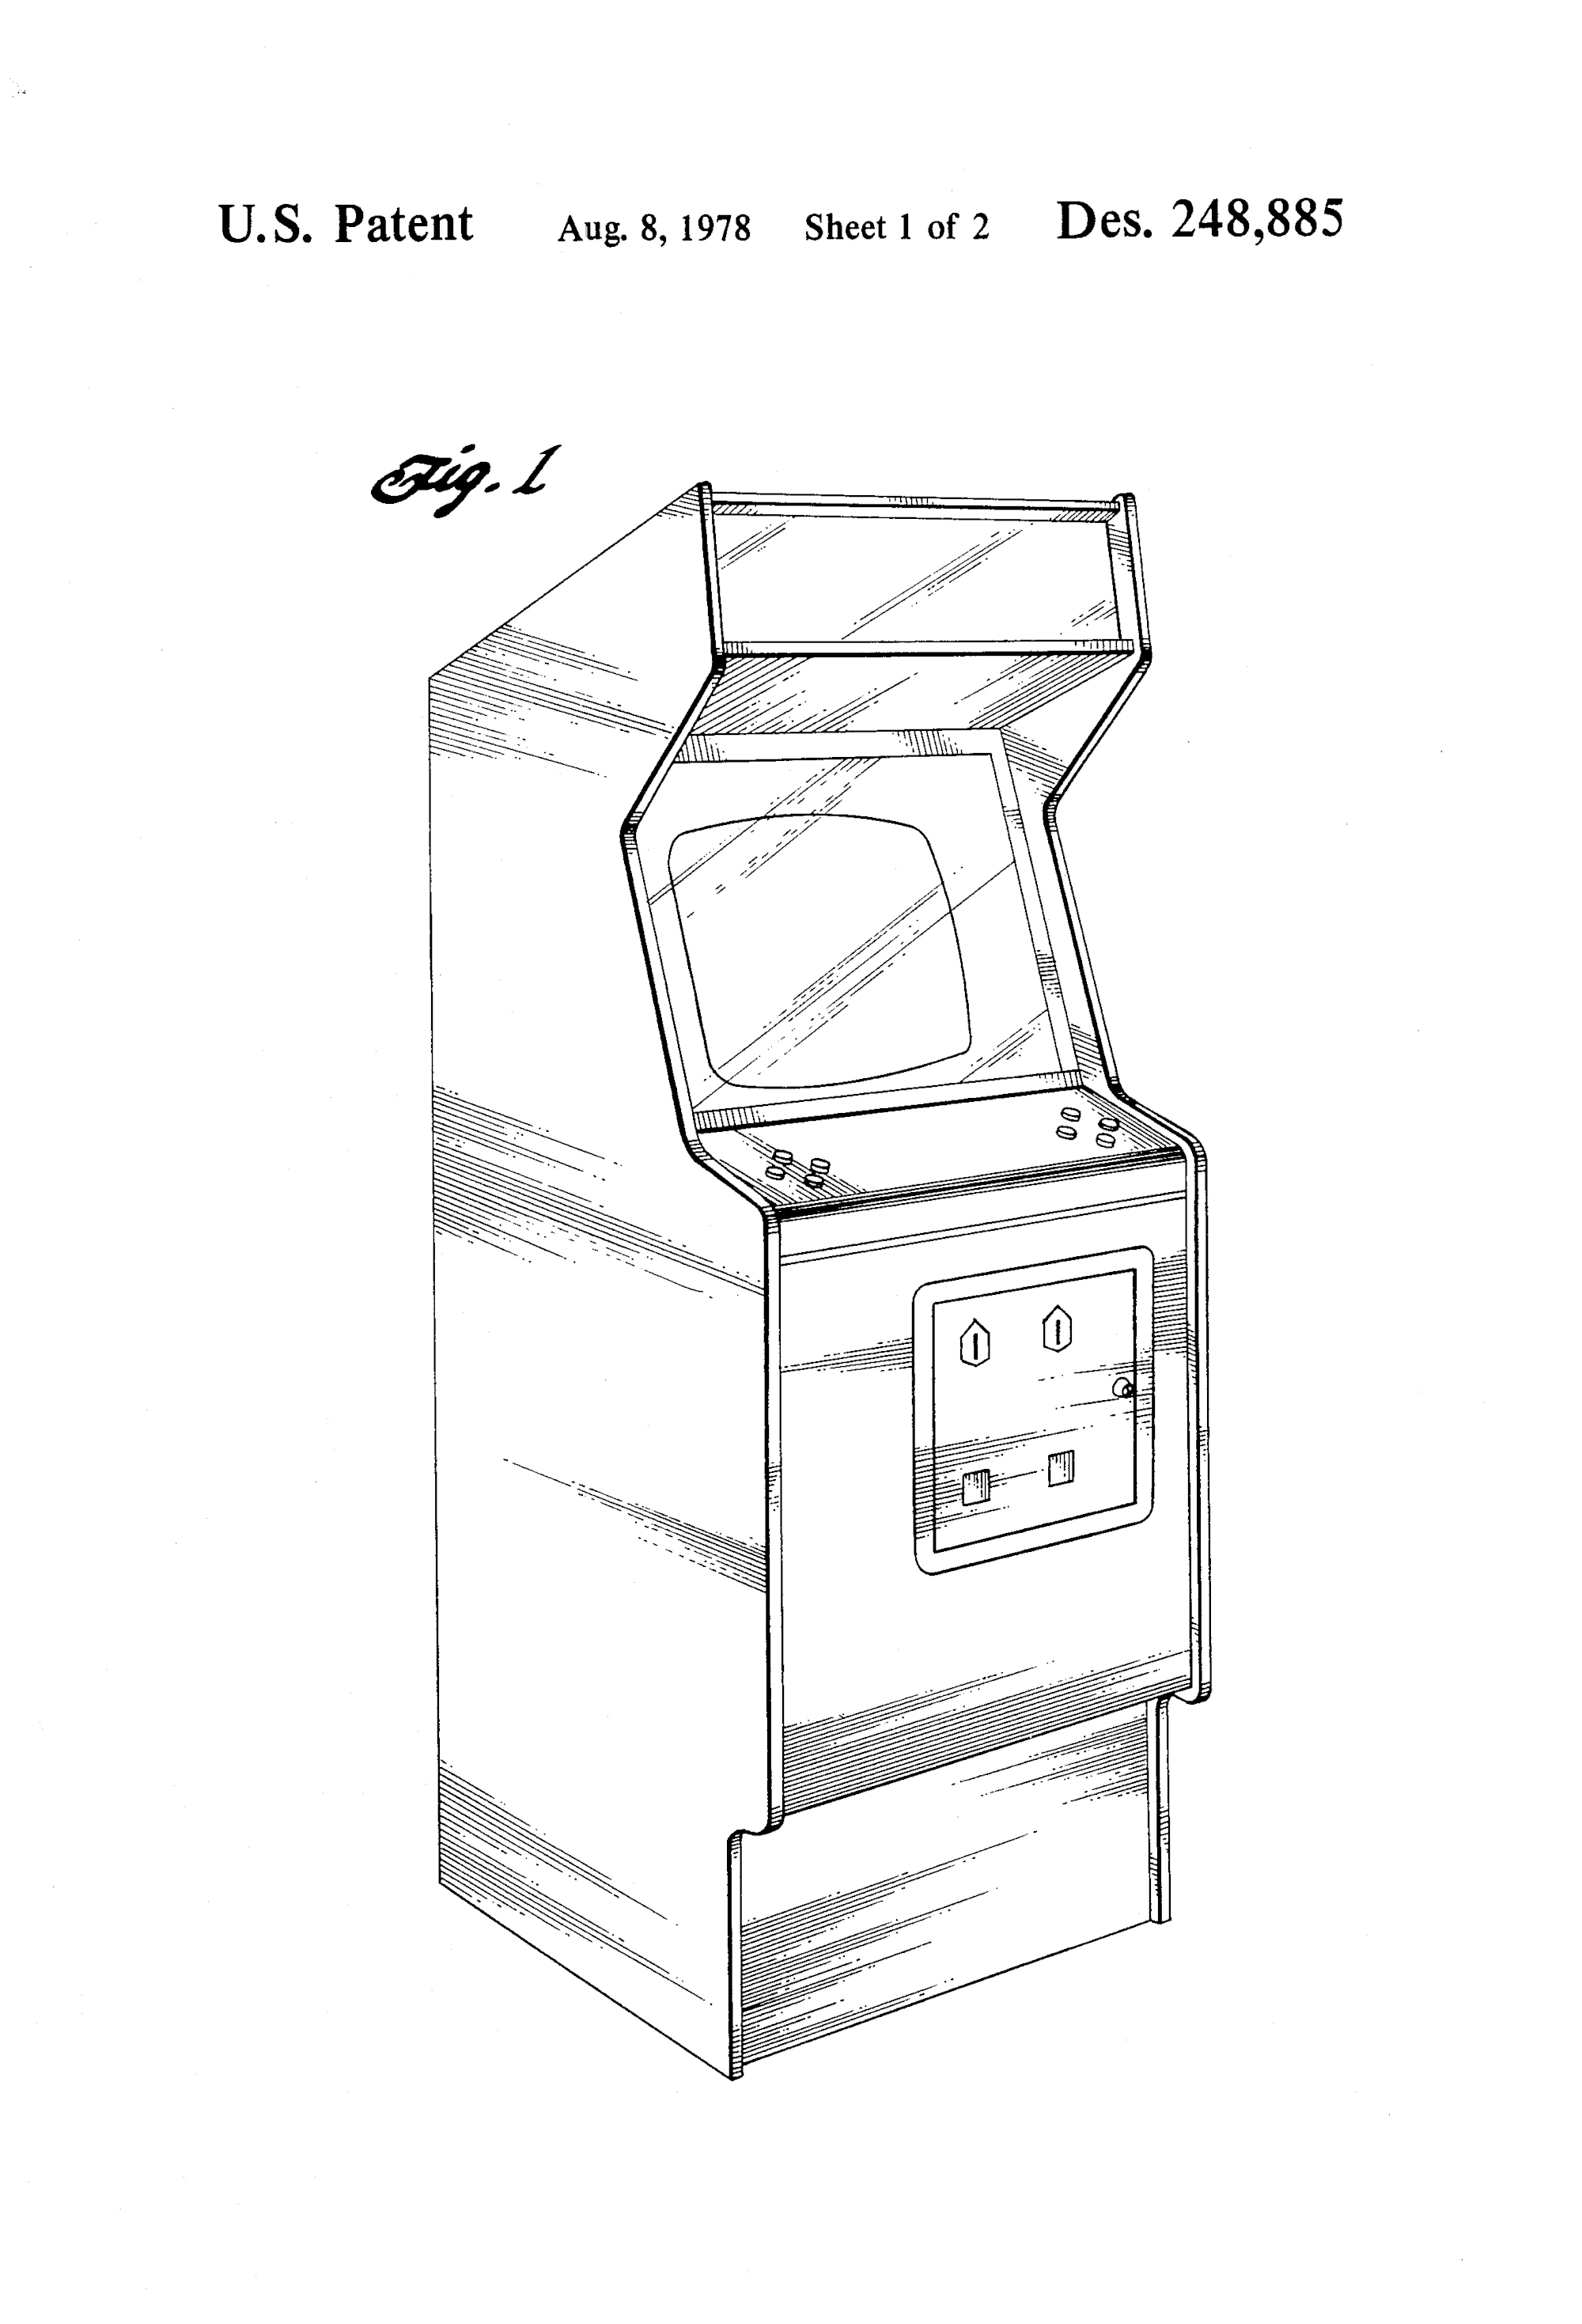 Video Game Cabinet, Lonnie C. Pogue, for Gremlin Industries, 1976/1978. Patent Number: USD 248,885, U.S. Patent Office